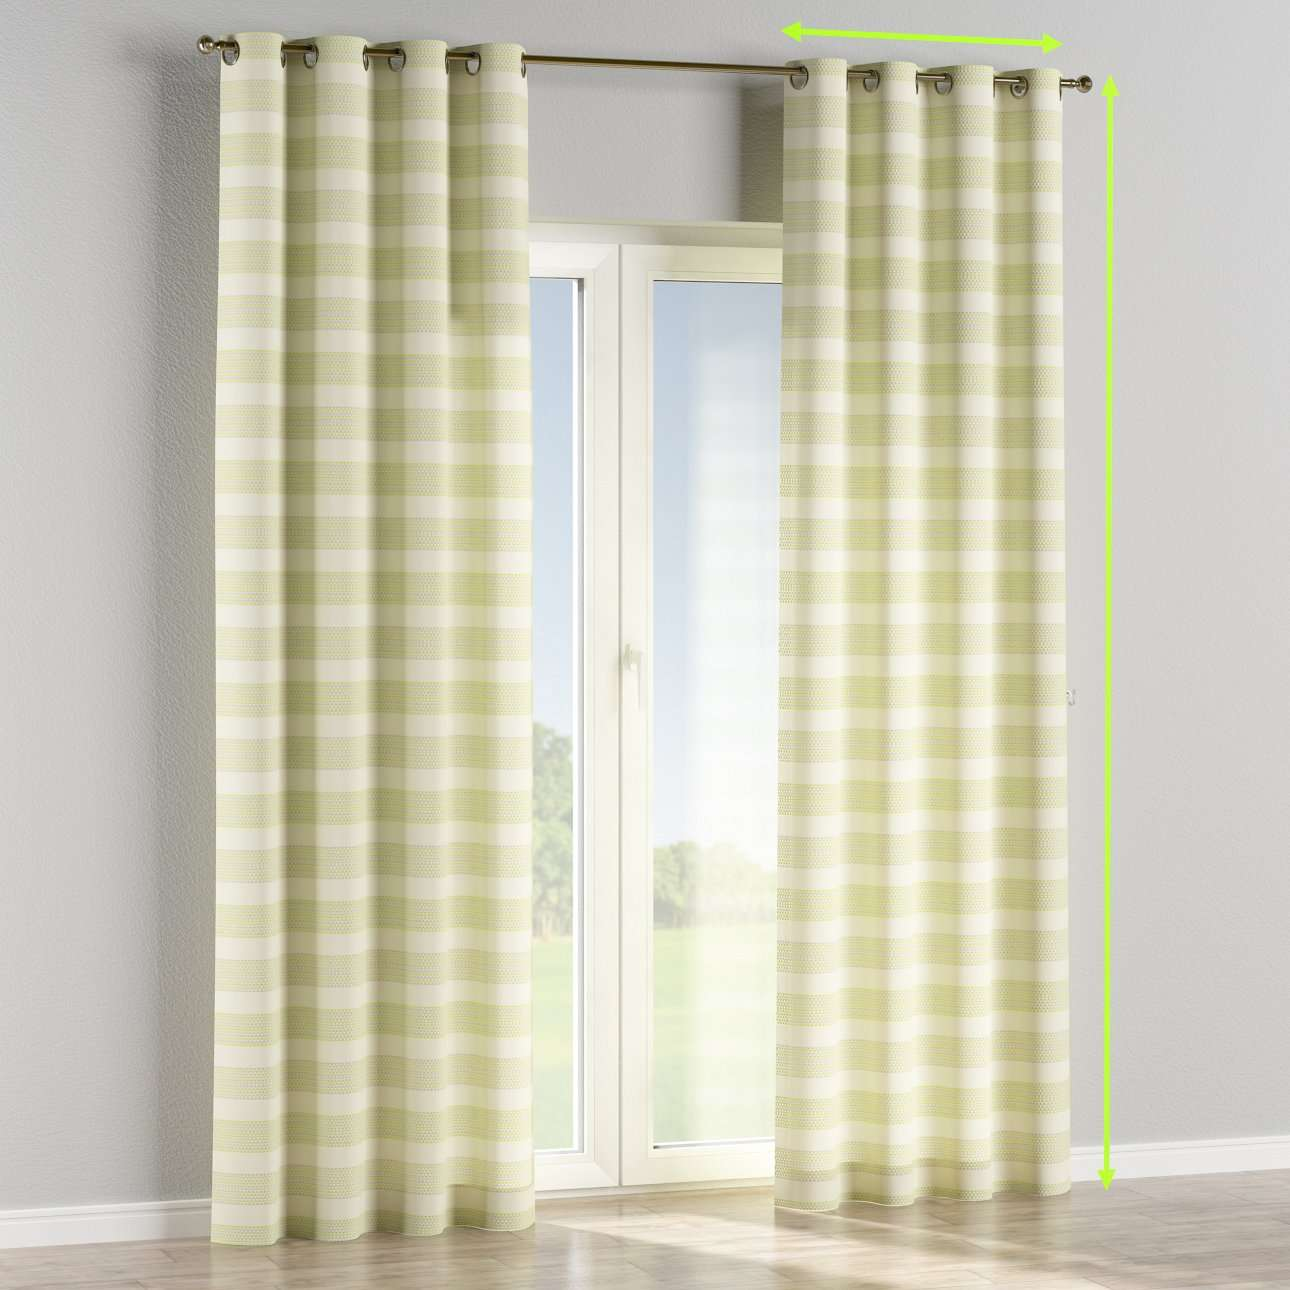 Eyelet curtains in collection Rustica, fabric: 140-35